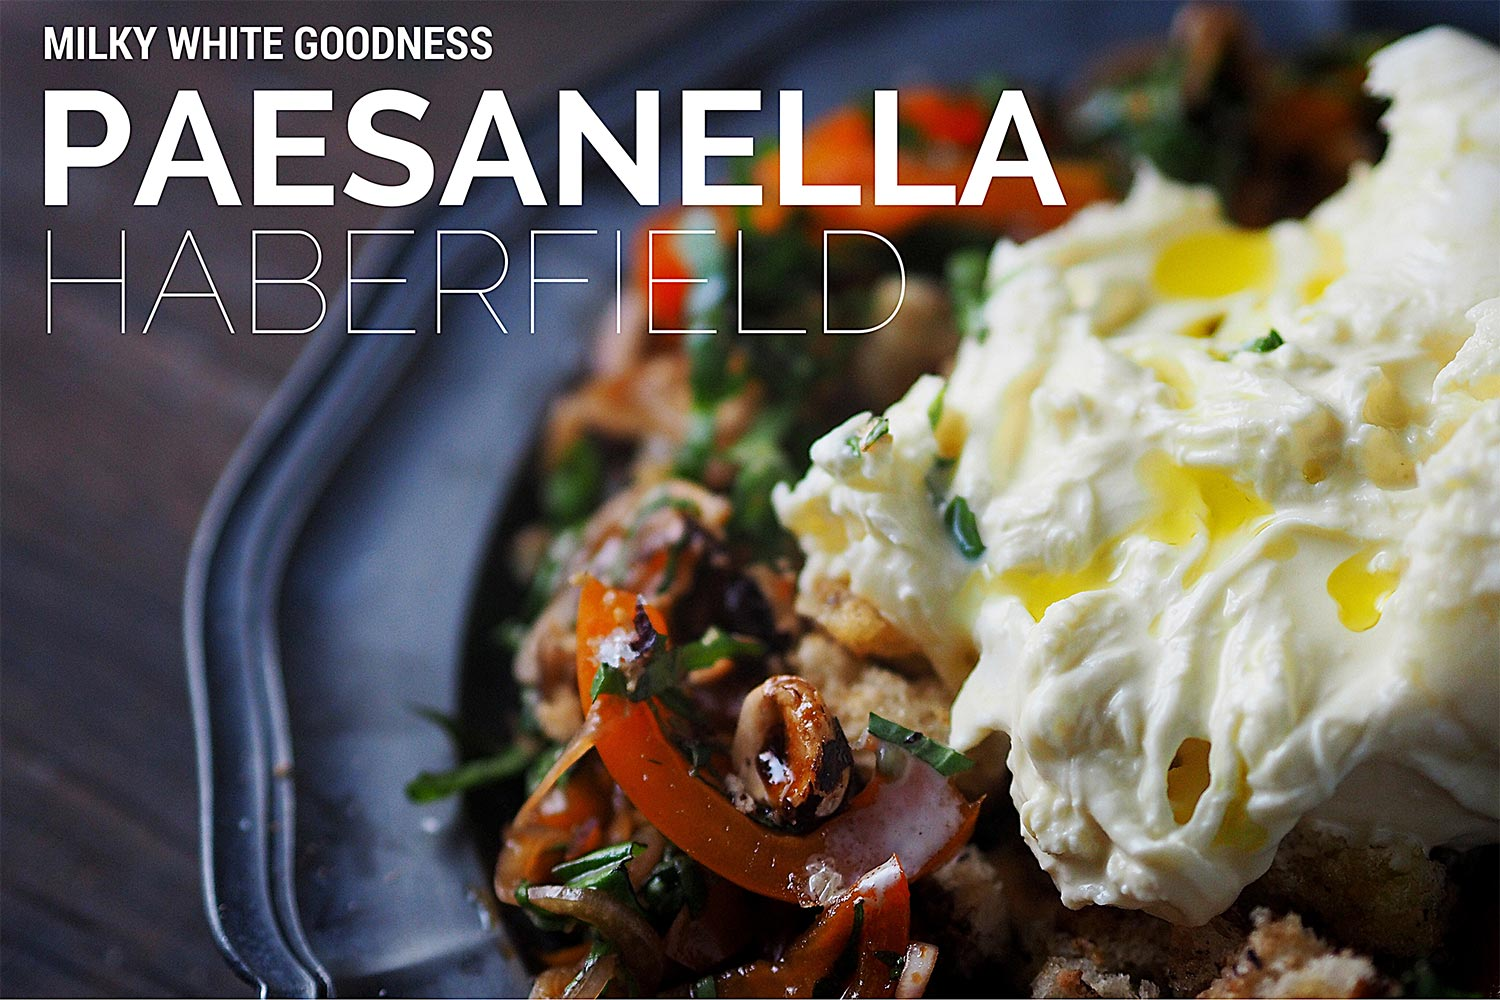 Sydney Food Blog Review of Paesanella, Haberfield